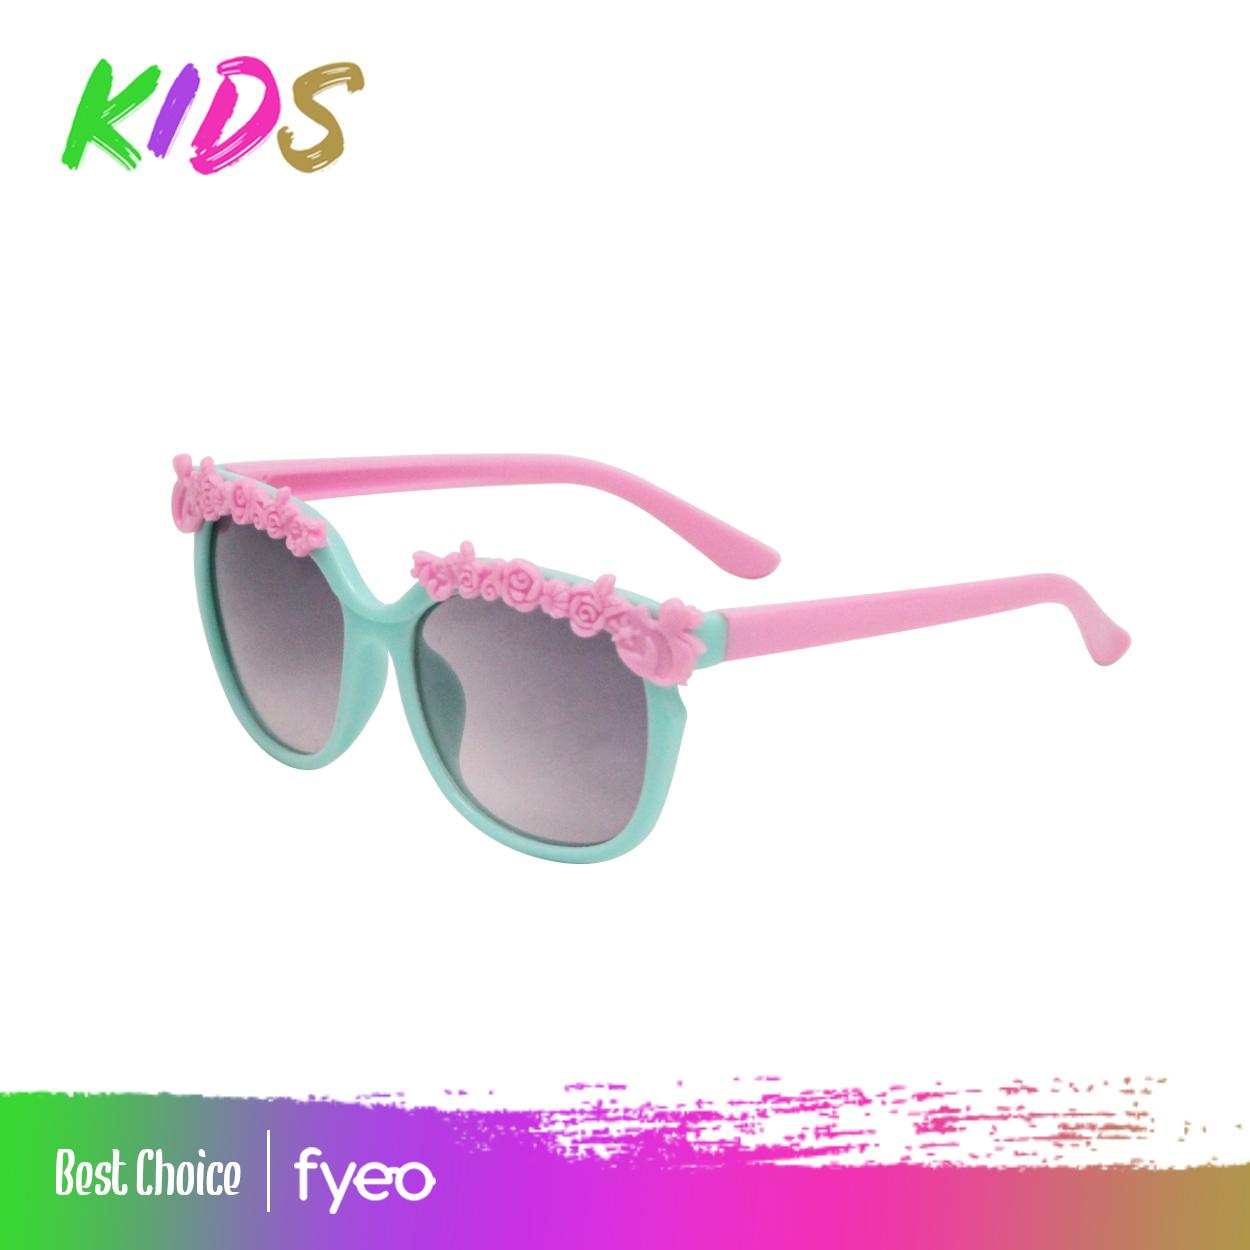 63c651c52847 Kids Sunglasses for sale - Sunglasses for Kids online brands, prices ...